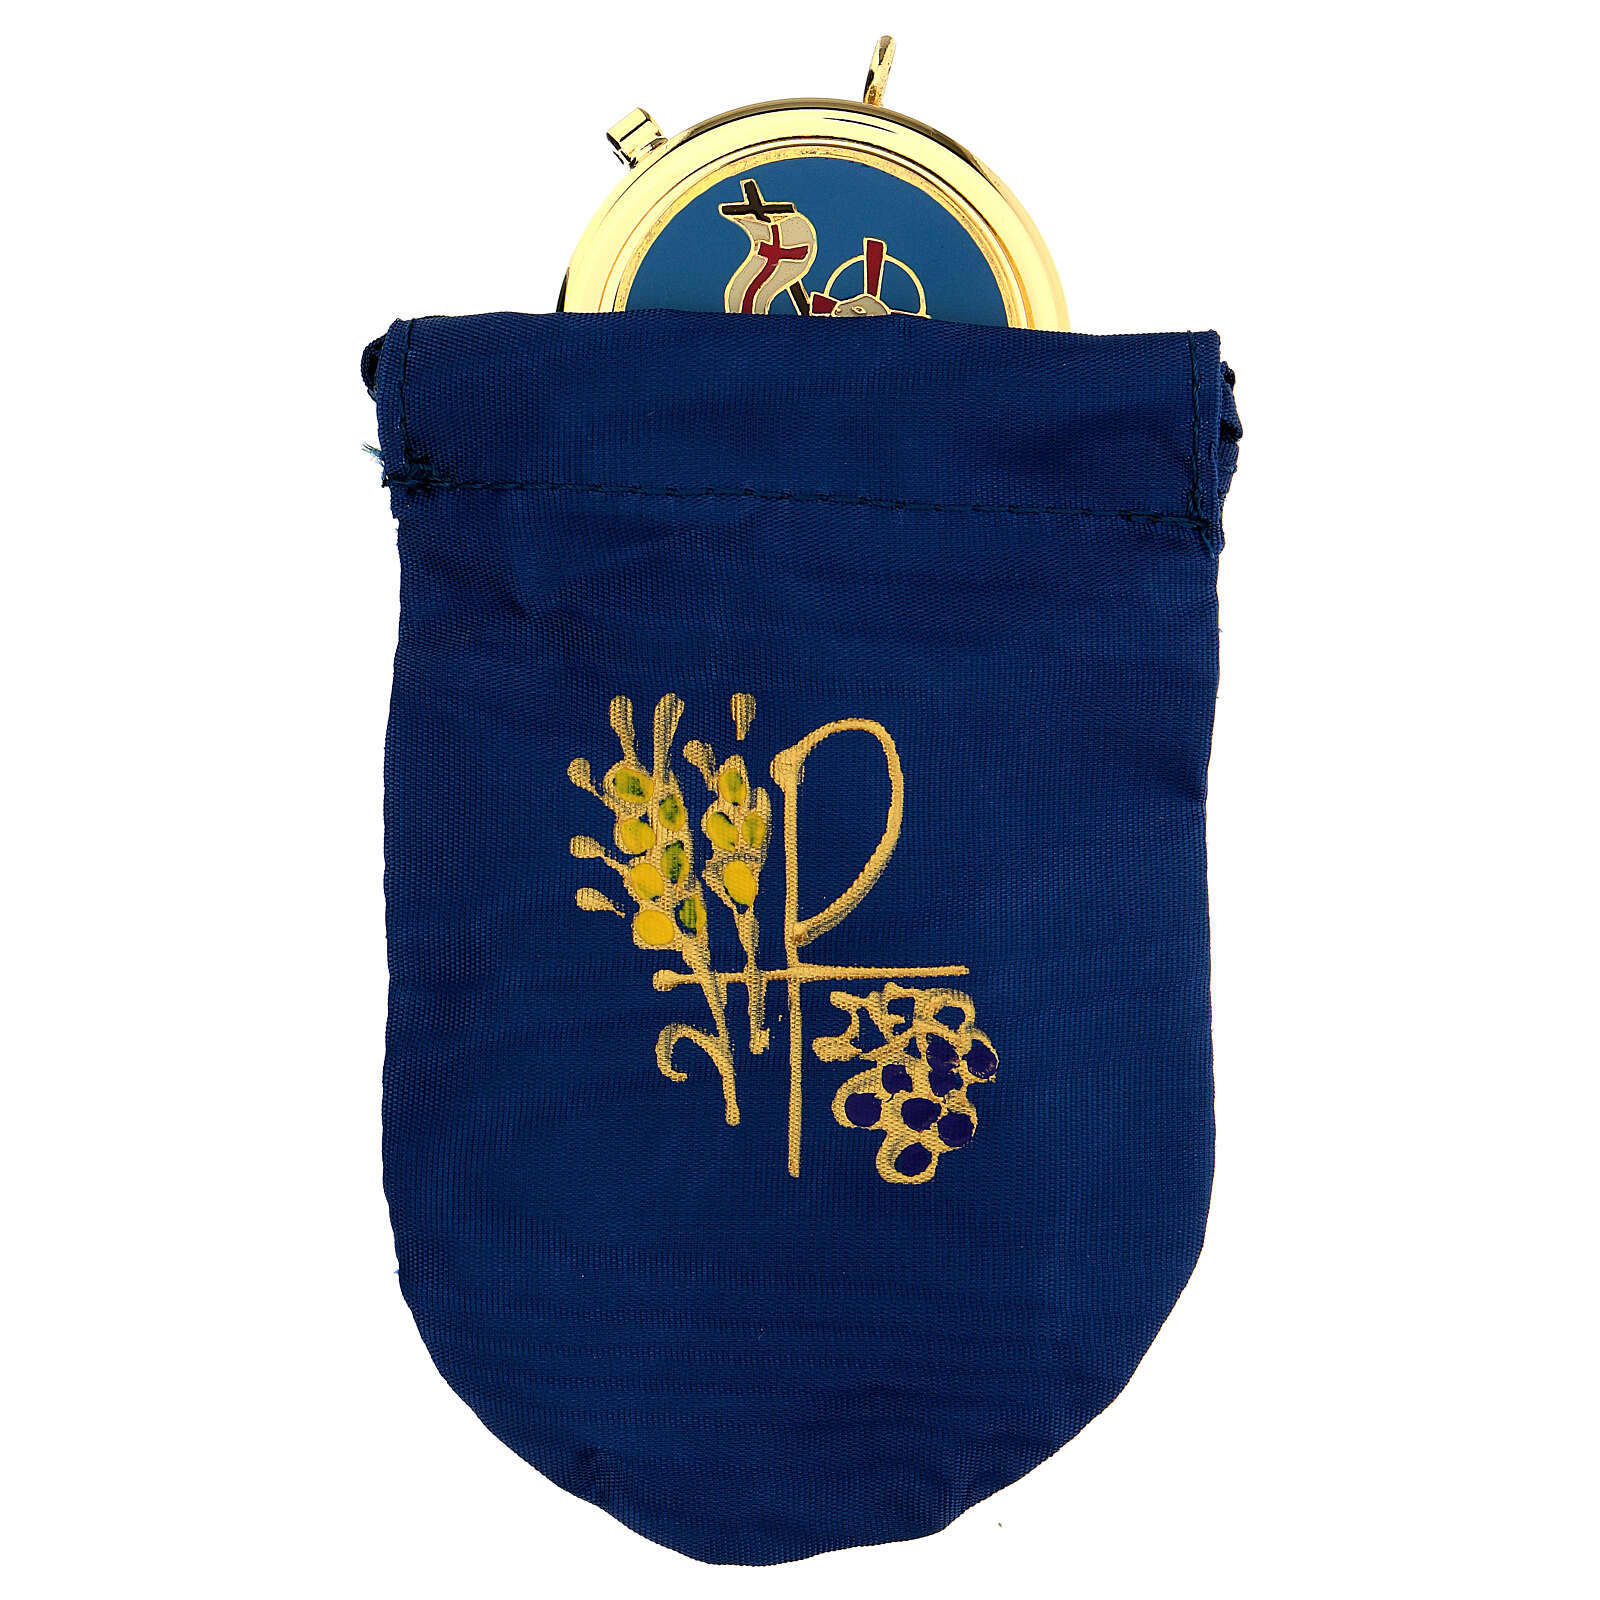 Blue satin burse with 2 in pyx in 24k gold plated brass 3